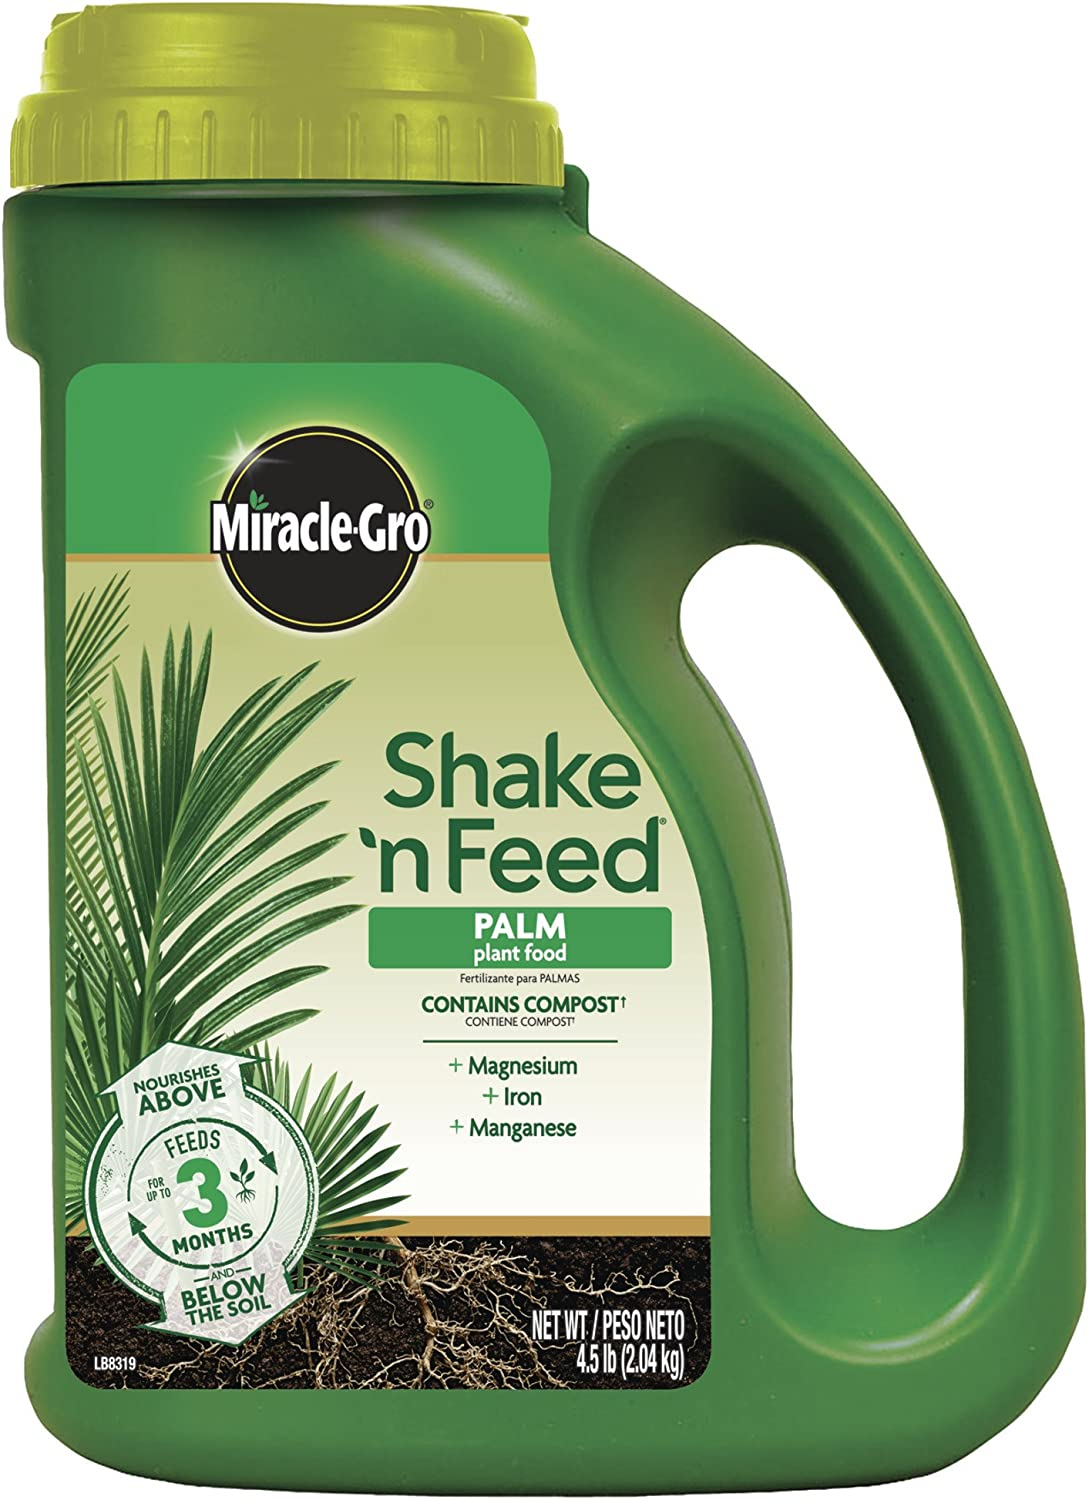 Miracle-Gro Shake 'N Feed Palm Plant Food, 4.5 lb.